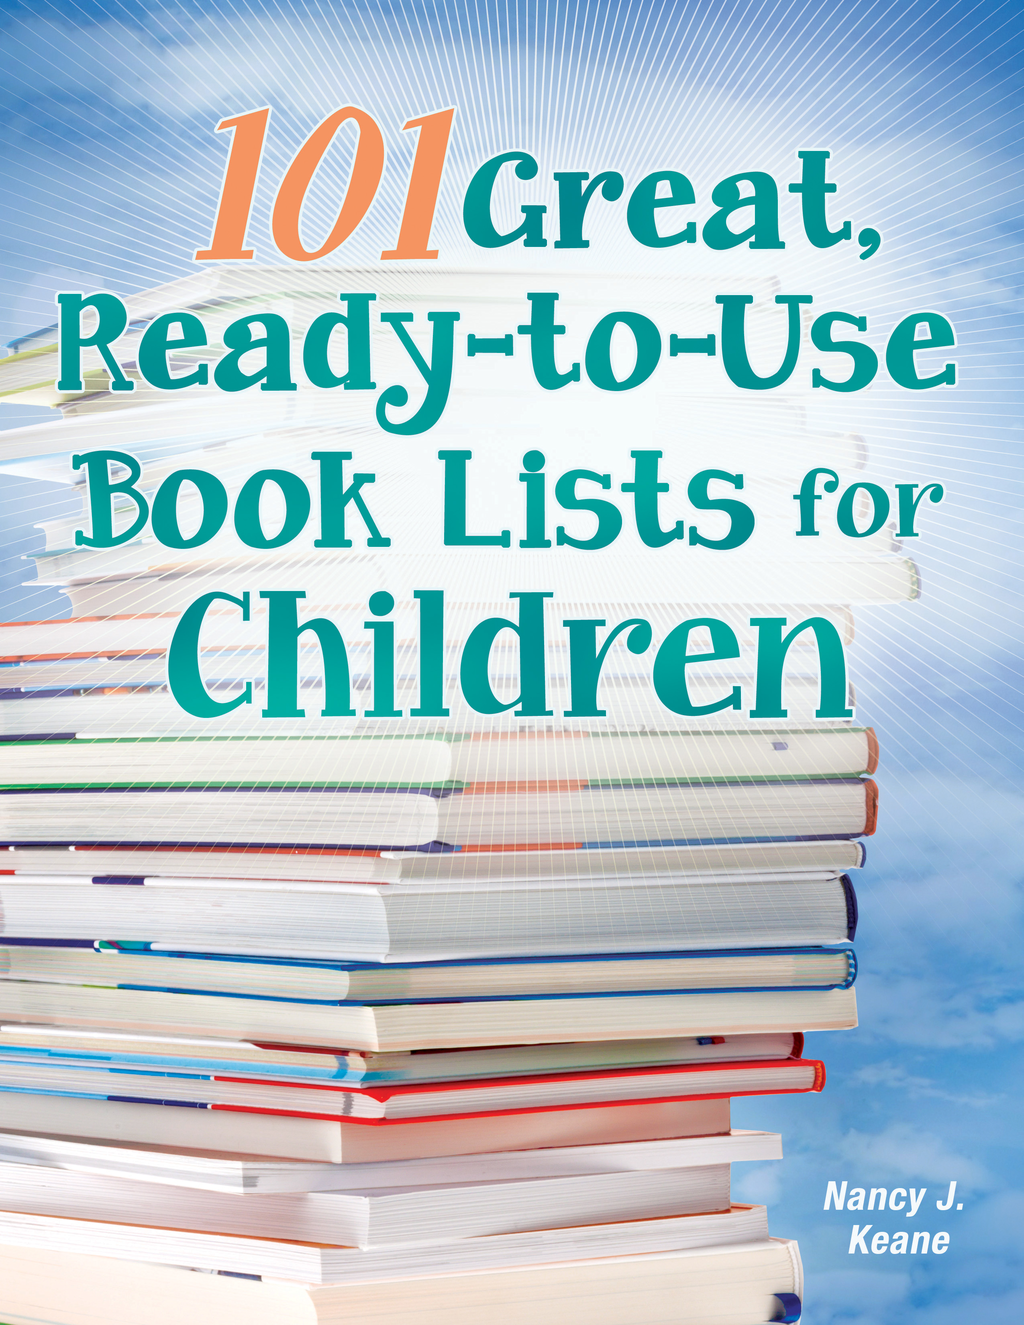 101 Great, Ready-to-Use Book Lists for Children By: Nancy J. Keane